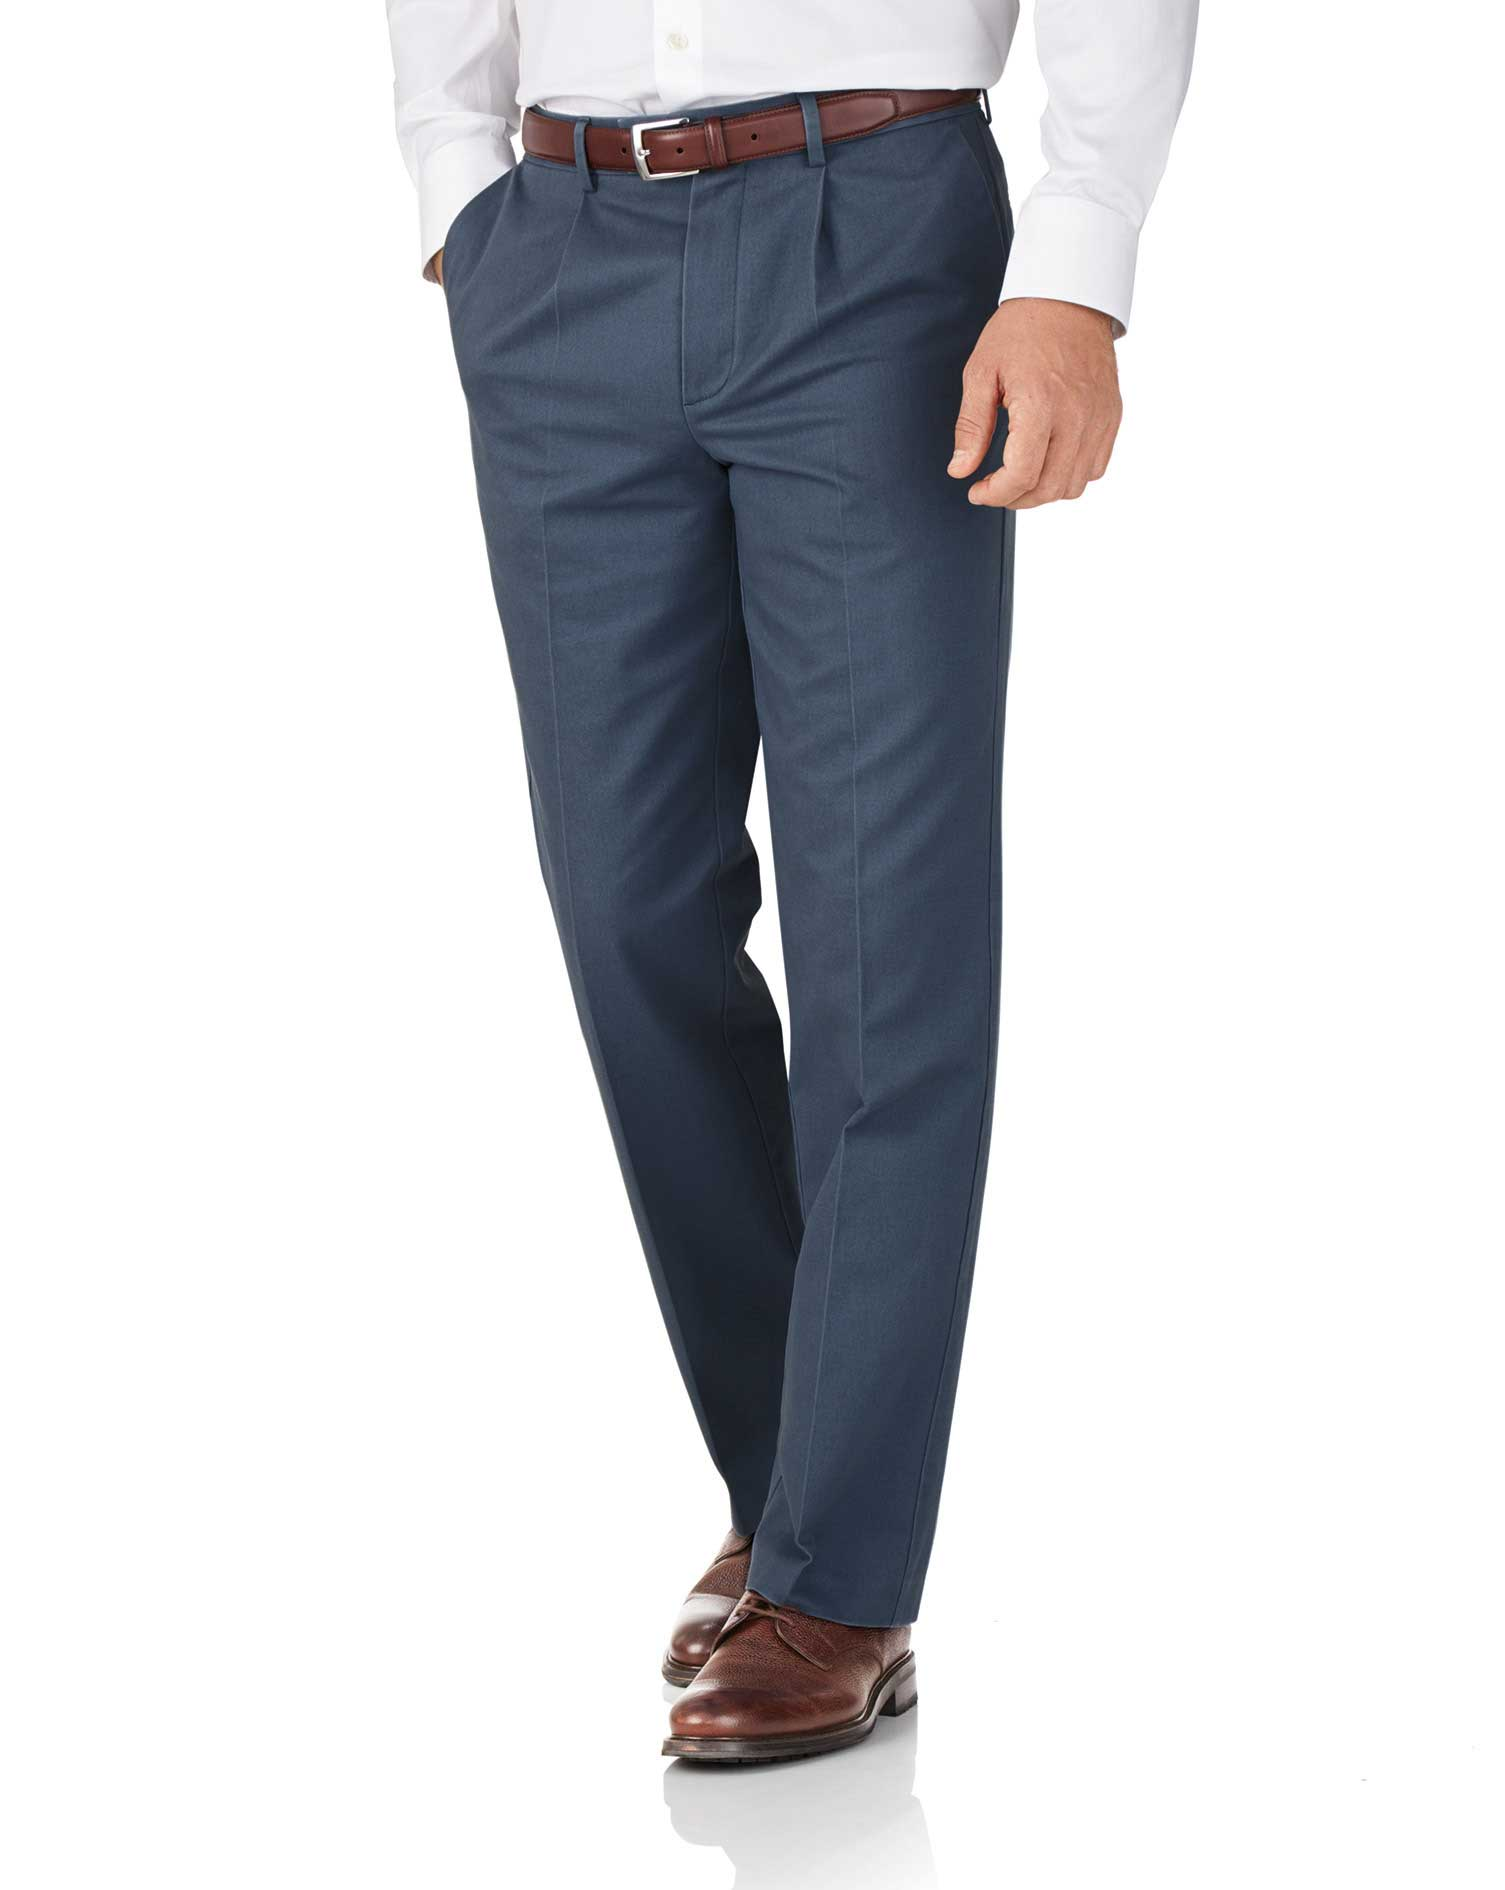 Airforce Blue Classic Fit Single Pleat Non-Iron Cotton Chino Trousers Size W42 L32 by Charles Tyrwhi